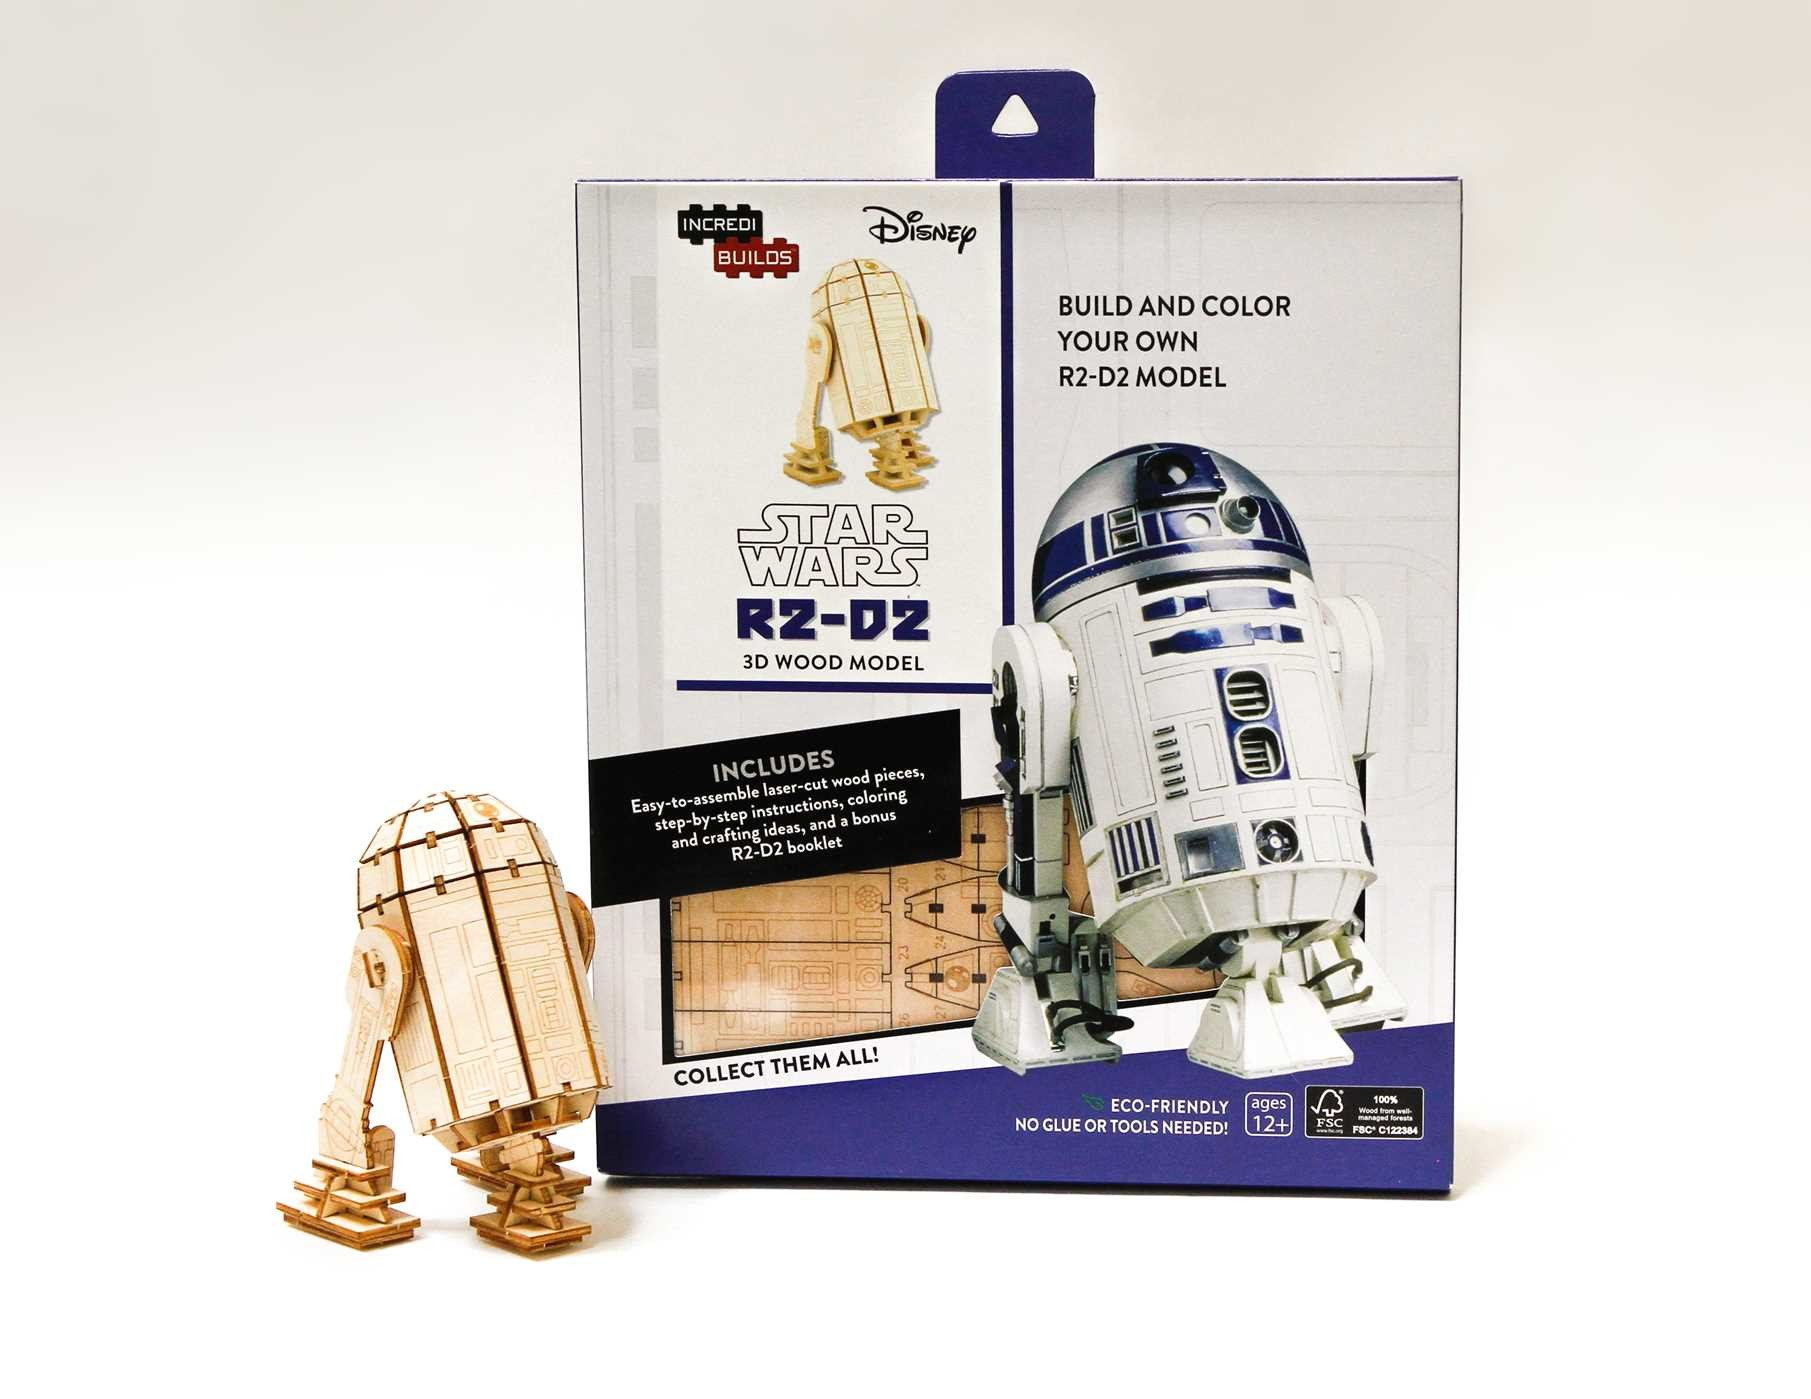 Incredibuilds star wars r2 d2 3d wood model 9781682980279.in03